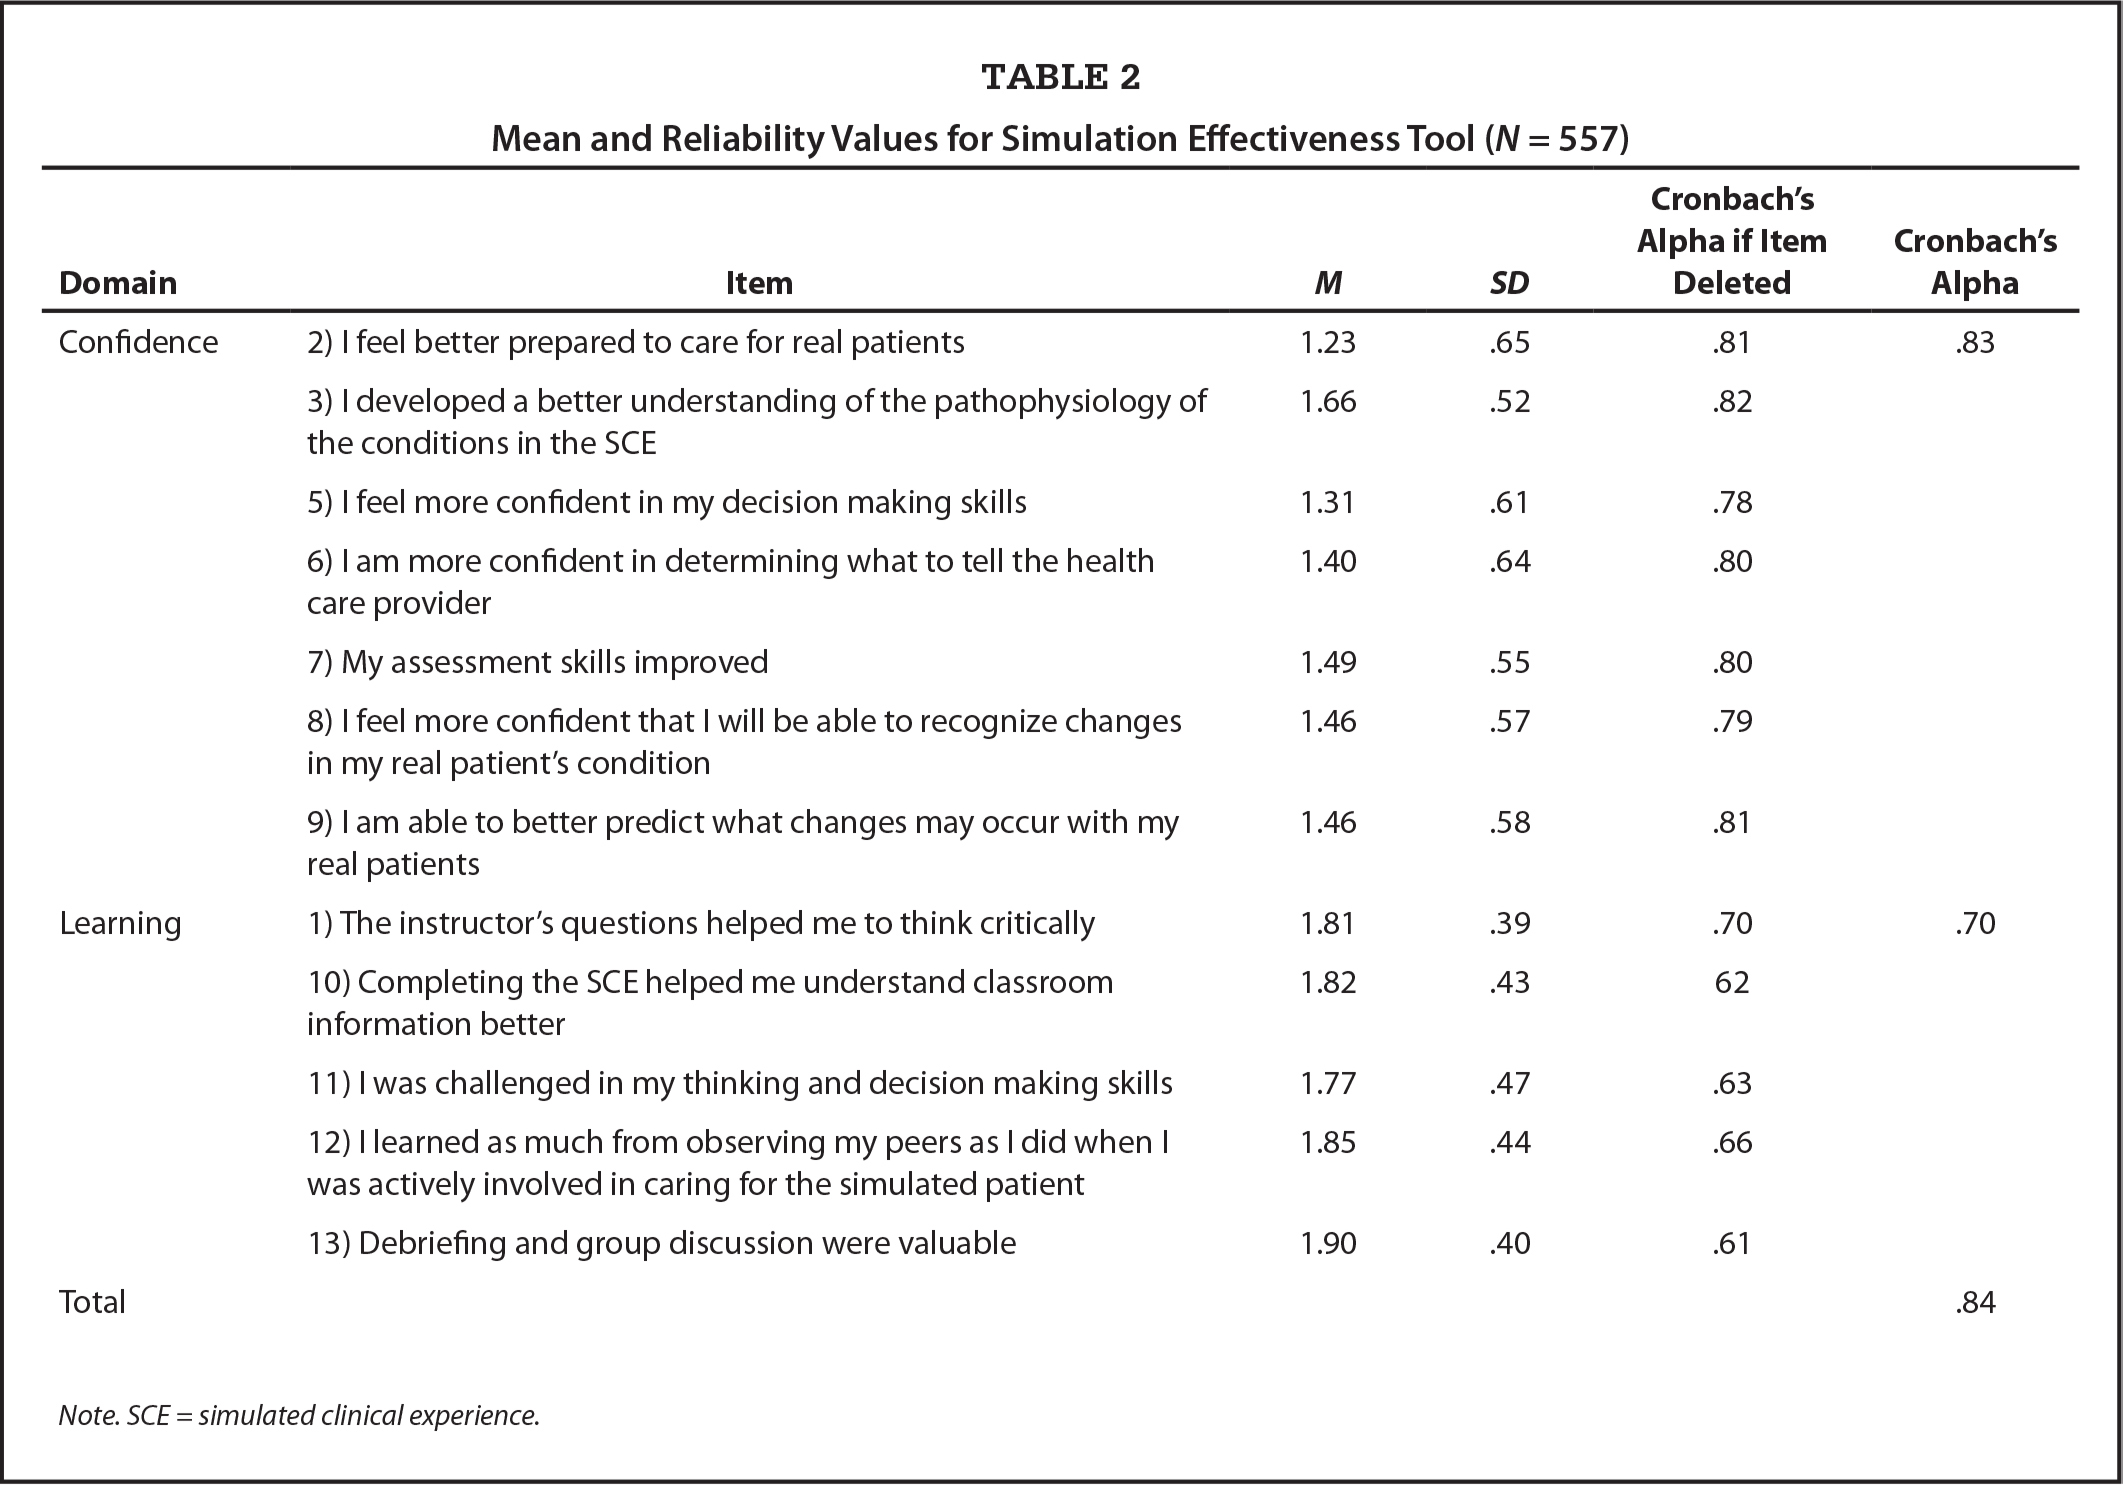 Mean and Reliability Values for Simulation Effectiveness Tool (N = 557)